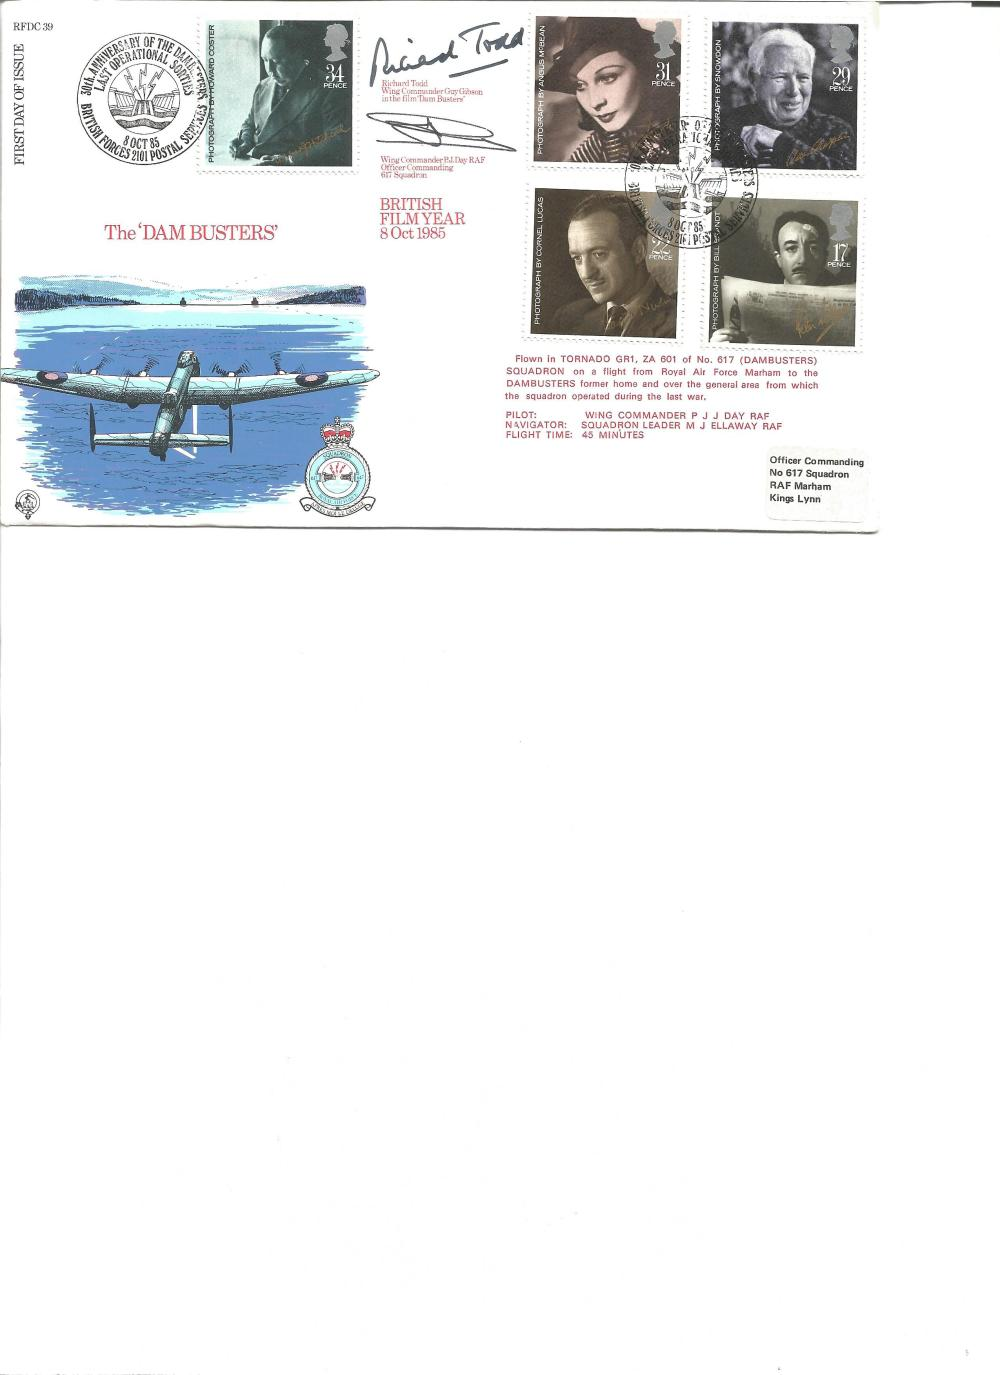 Richard Todd and Wg Comm P Day signed The Dambusters cover. Good Condition. All signed pieces come